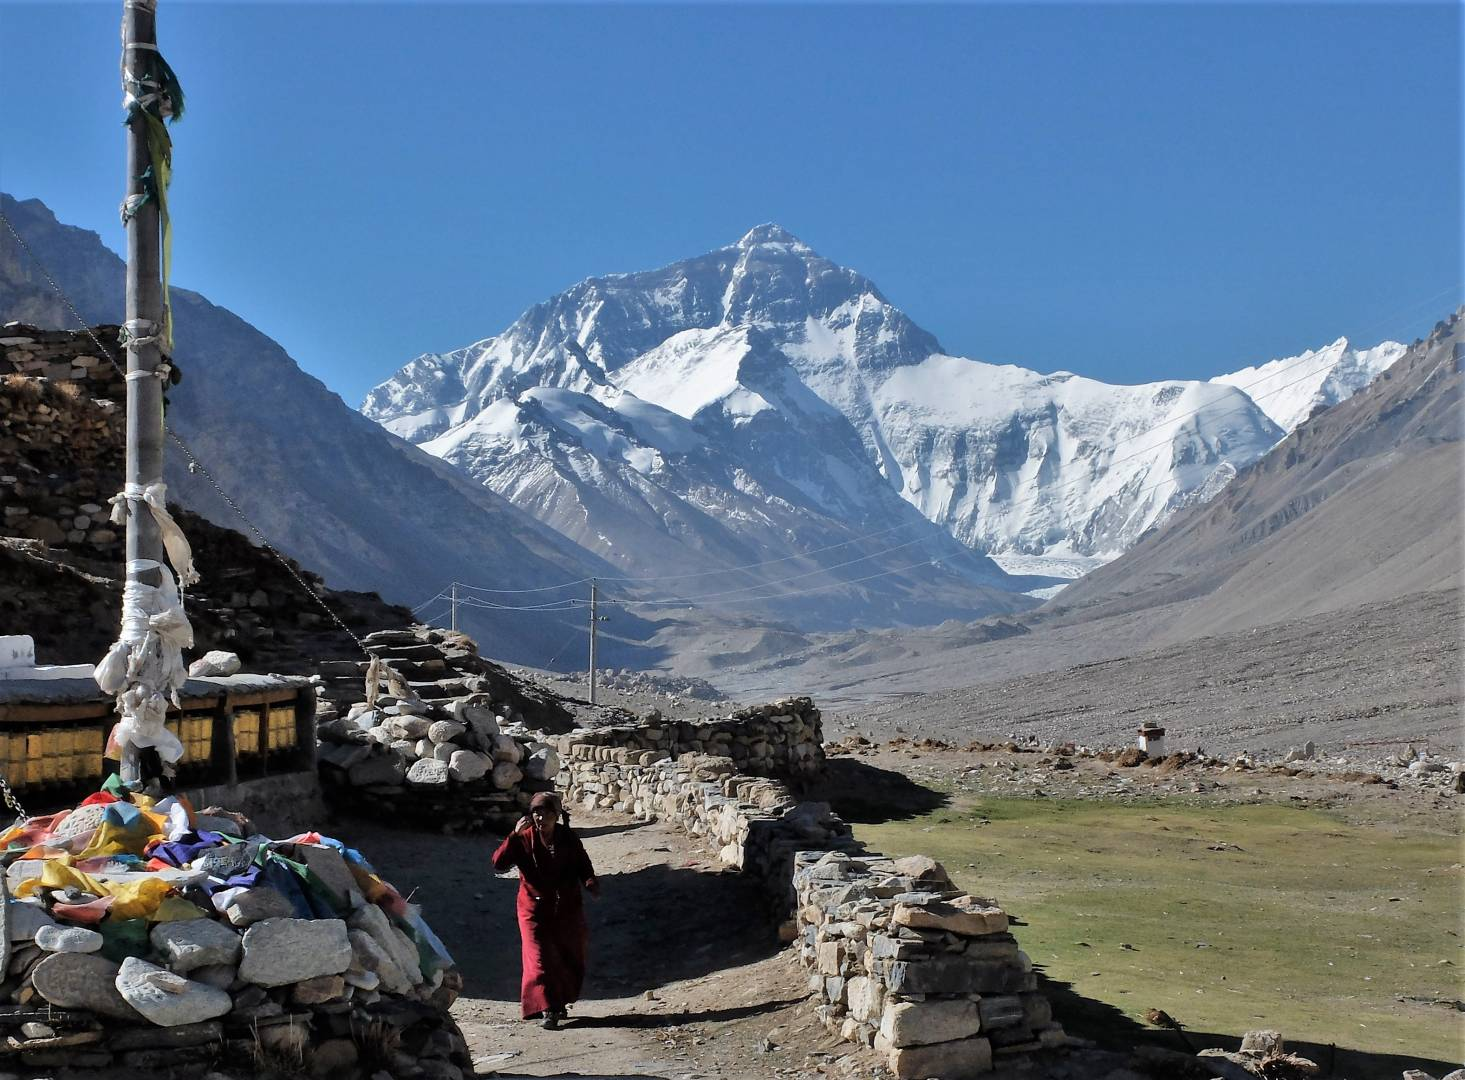 Morning at the Rongbuk Monastery. Courtyard and breakfast time inside.